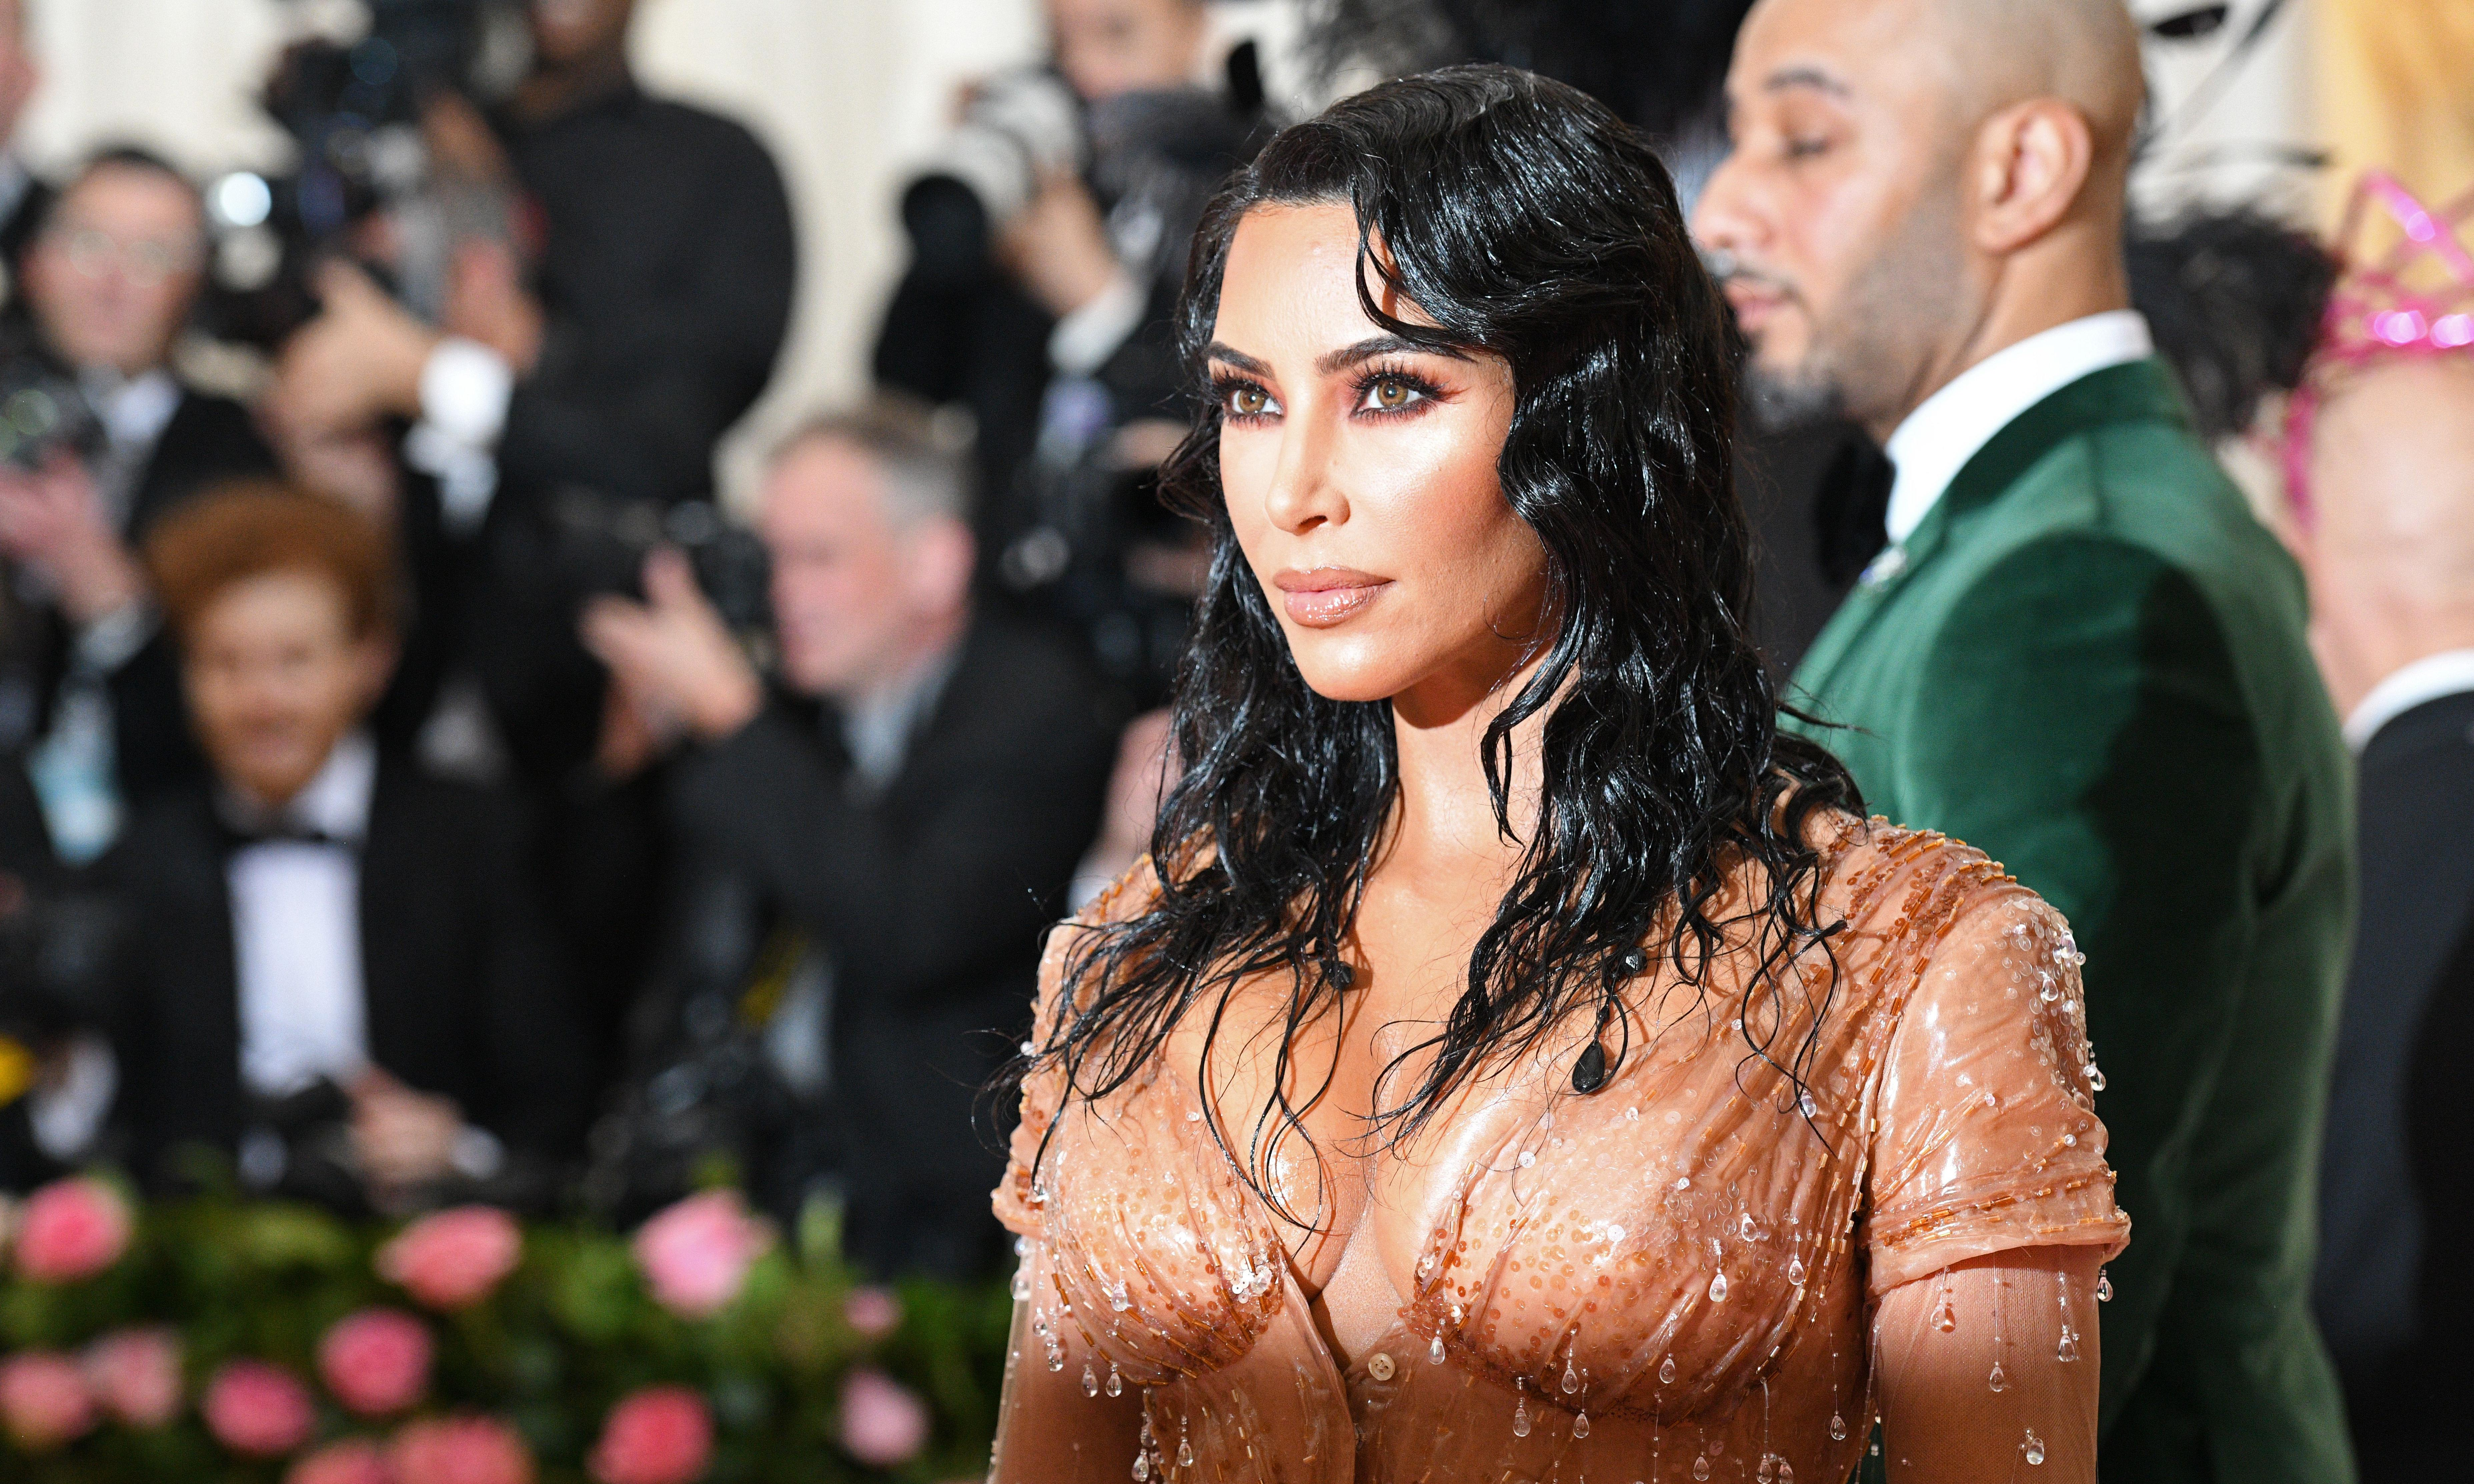 Your heart can only bleed for Kanye West – his wife is too sexy, apparently